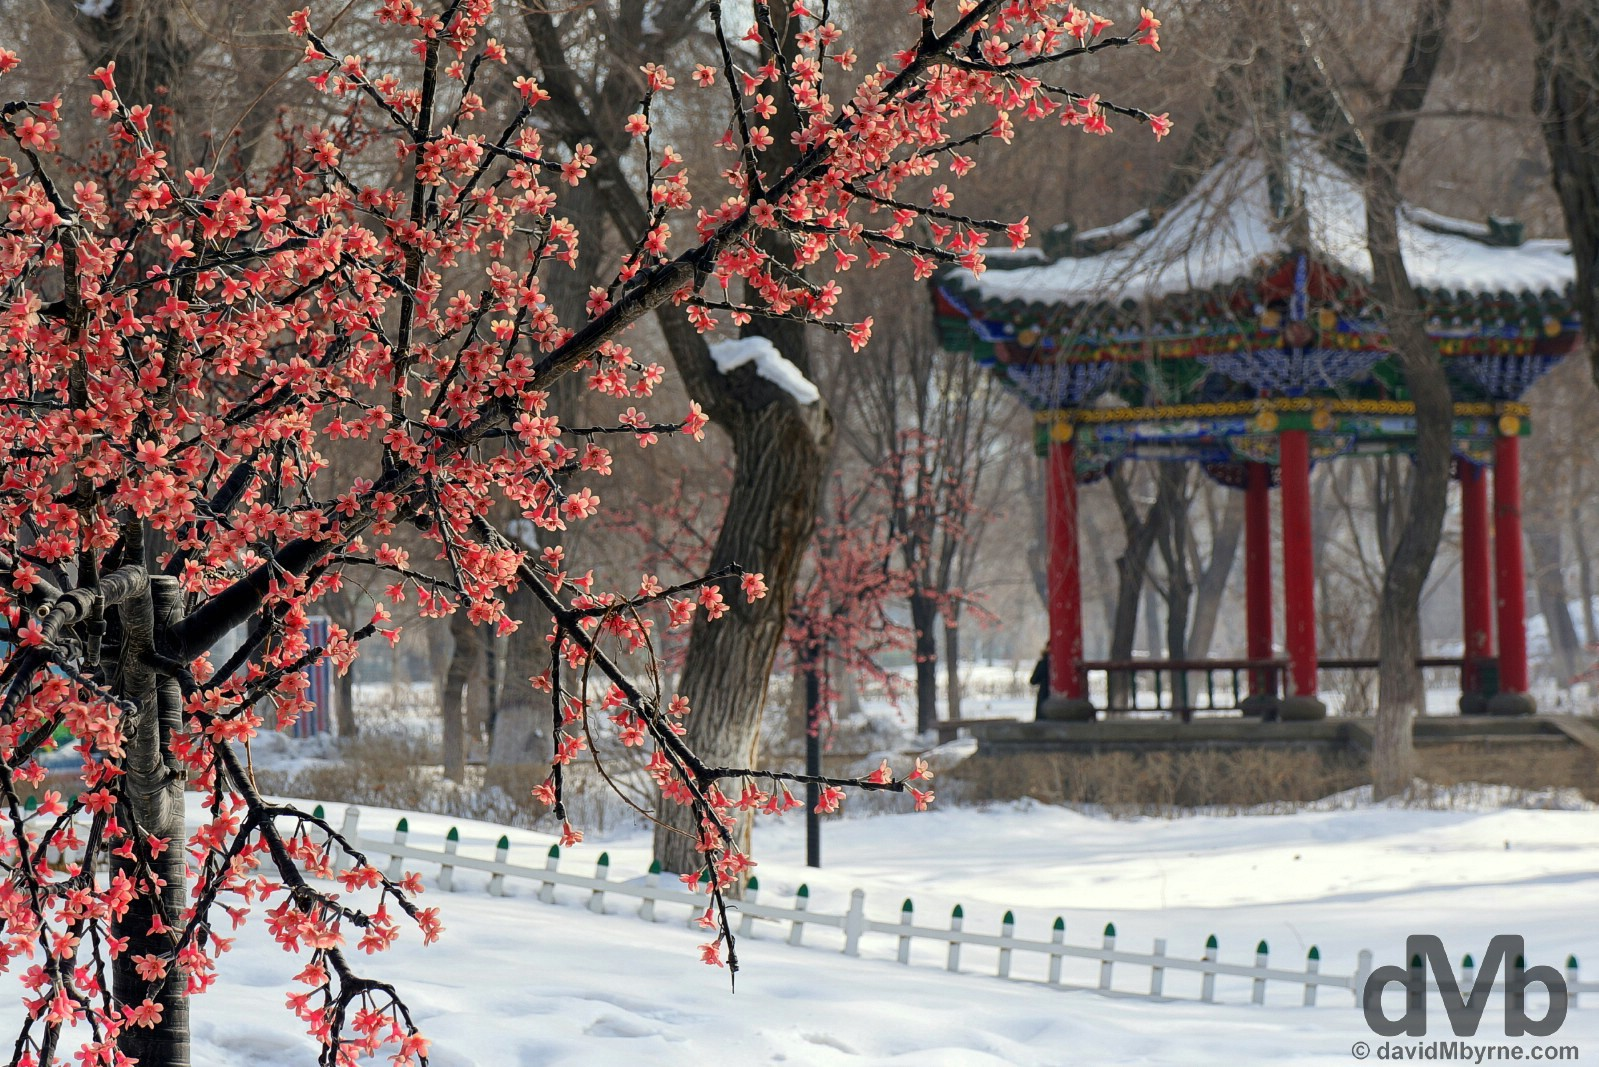 Wintry scenes in Renmin/People's Park in central Urumqi, northwest China. February 10, 2015.